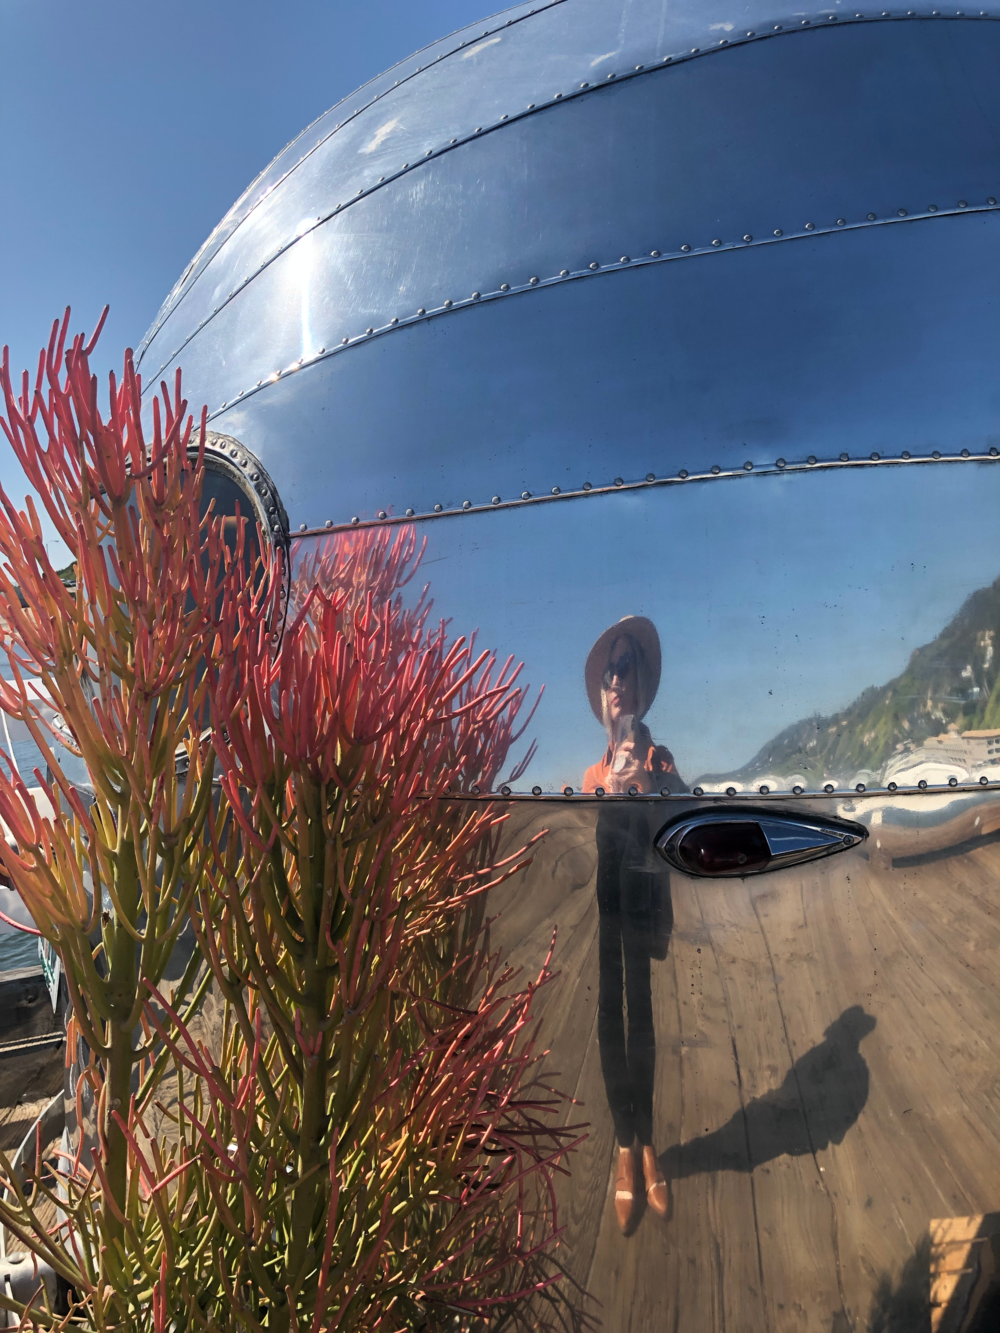 an airstream shop parked along the Malibu pier